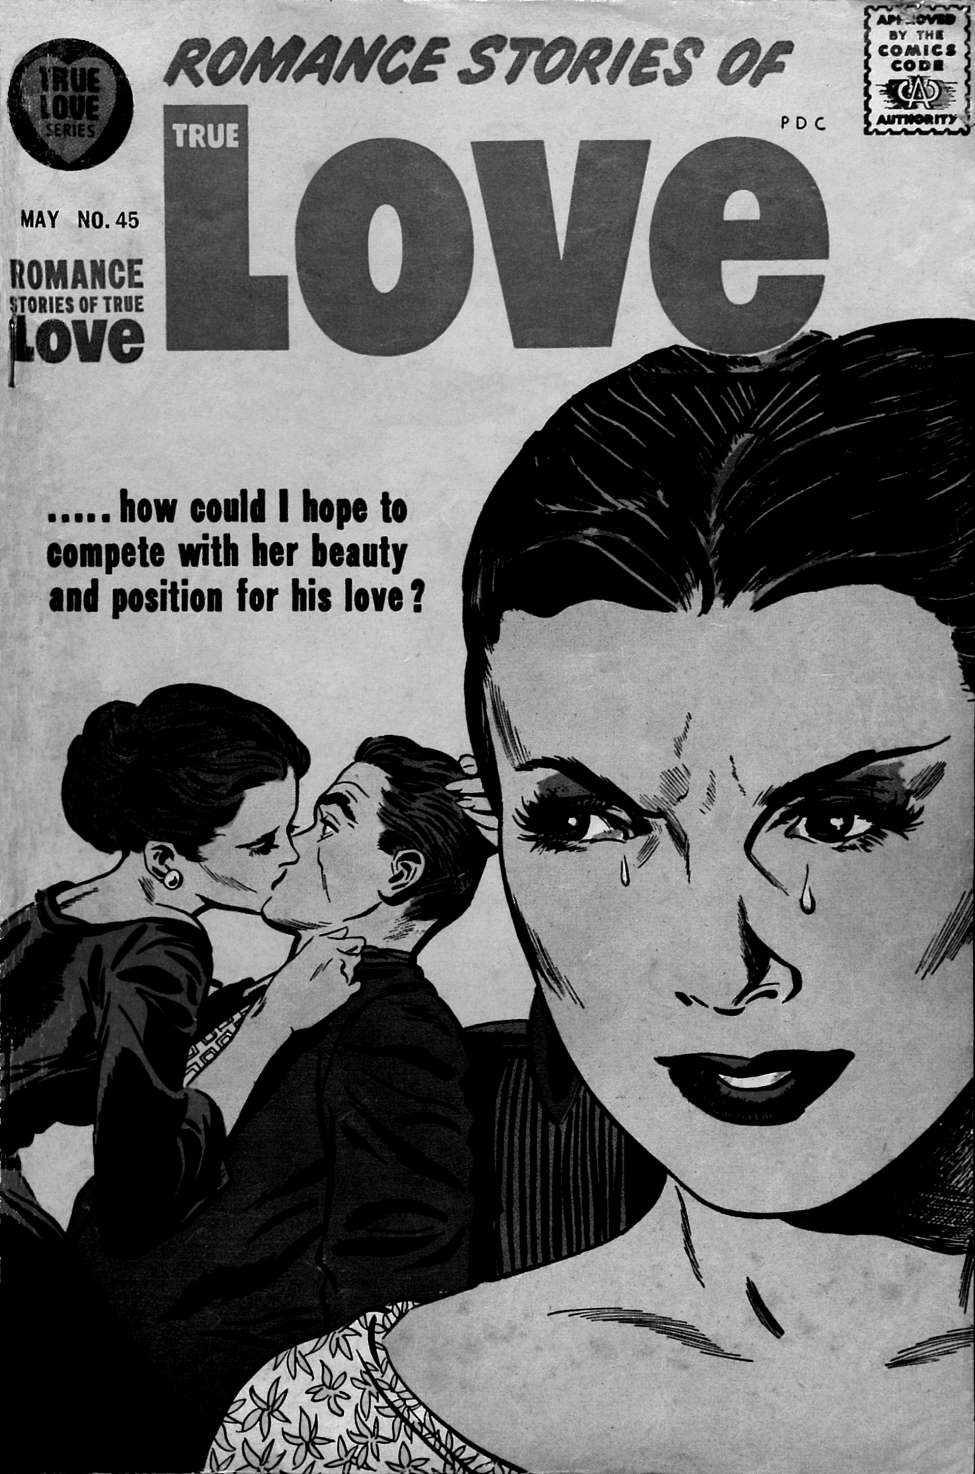 Comic Book Cover For Romance Stories of True Love 45 (Special Ed.) - Version 2